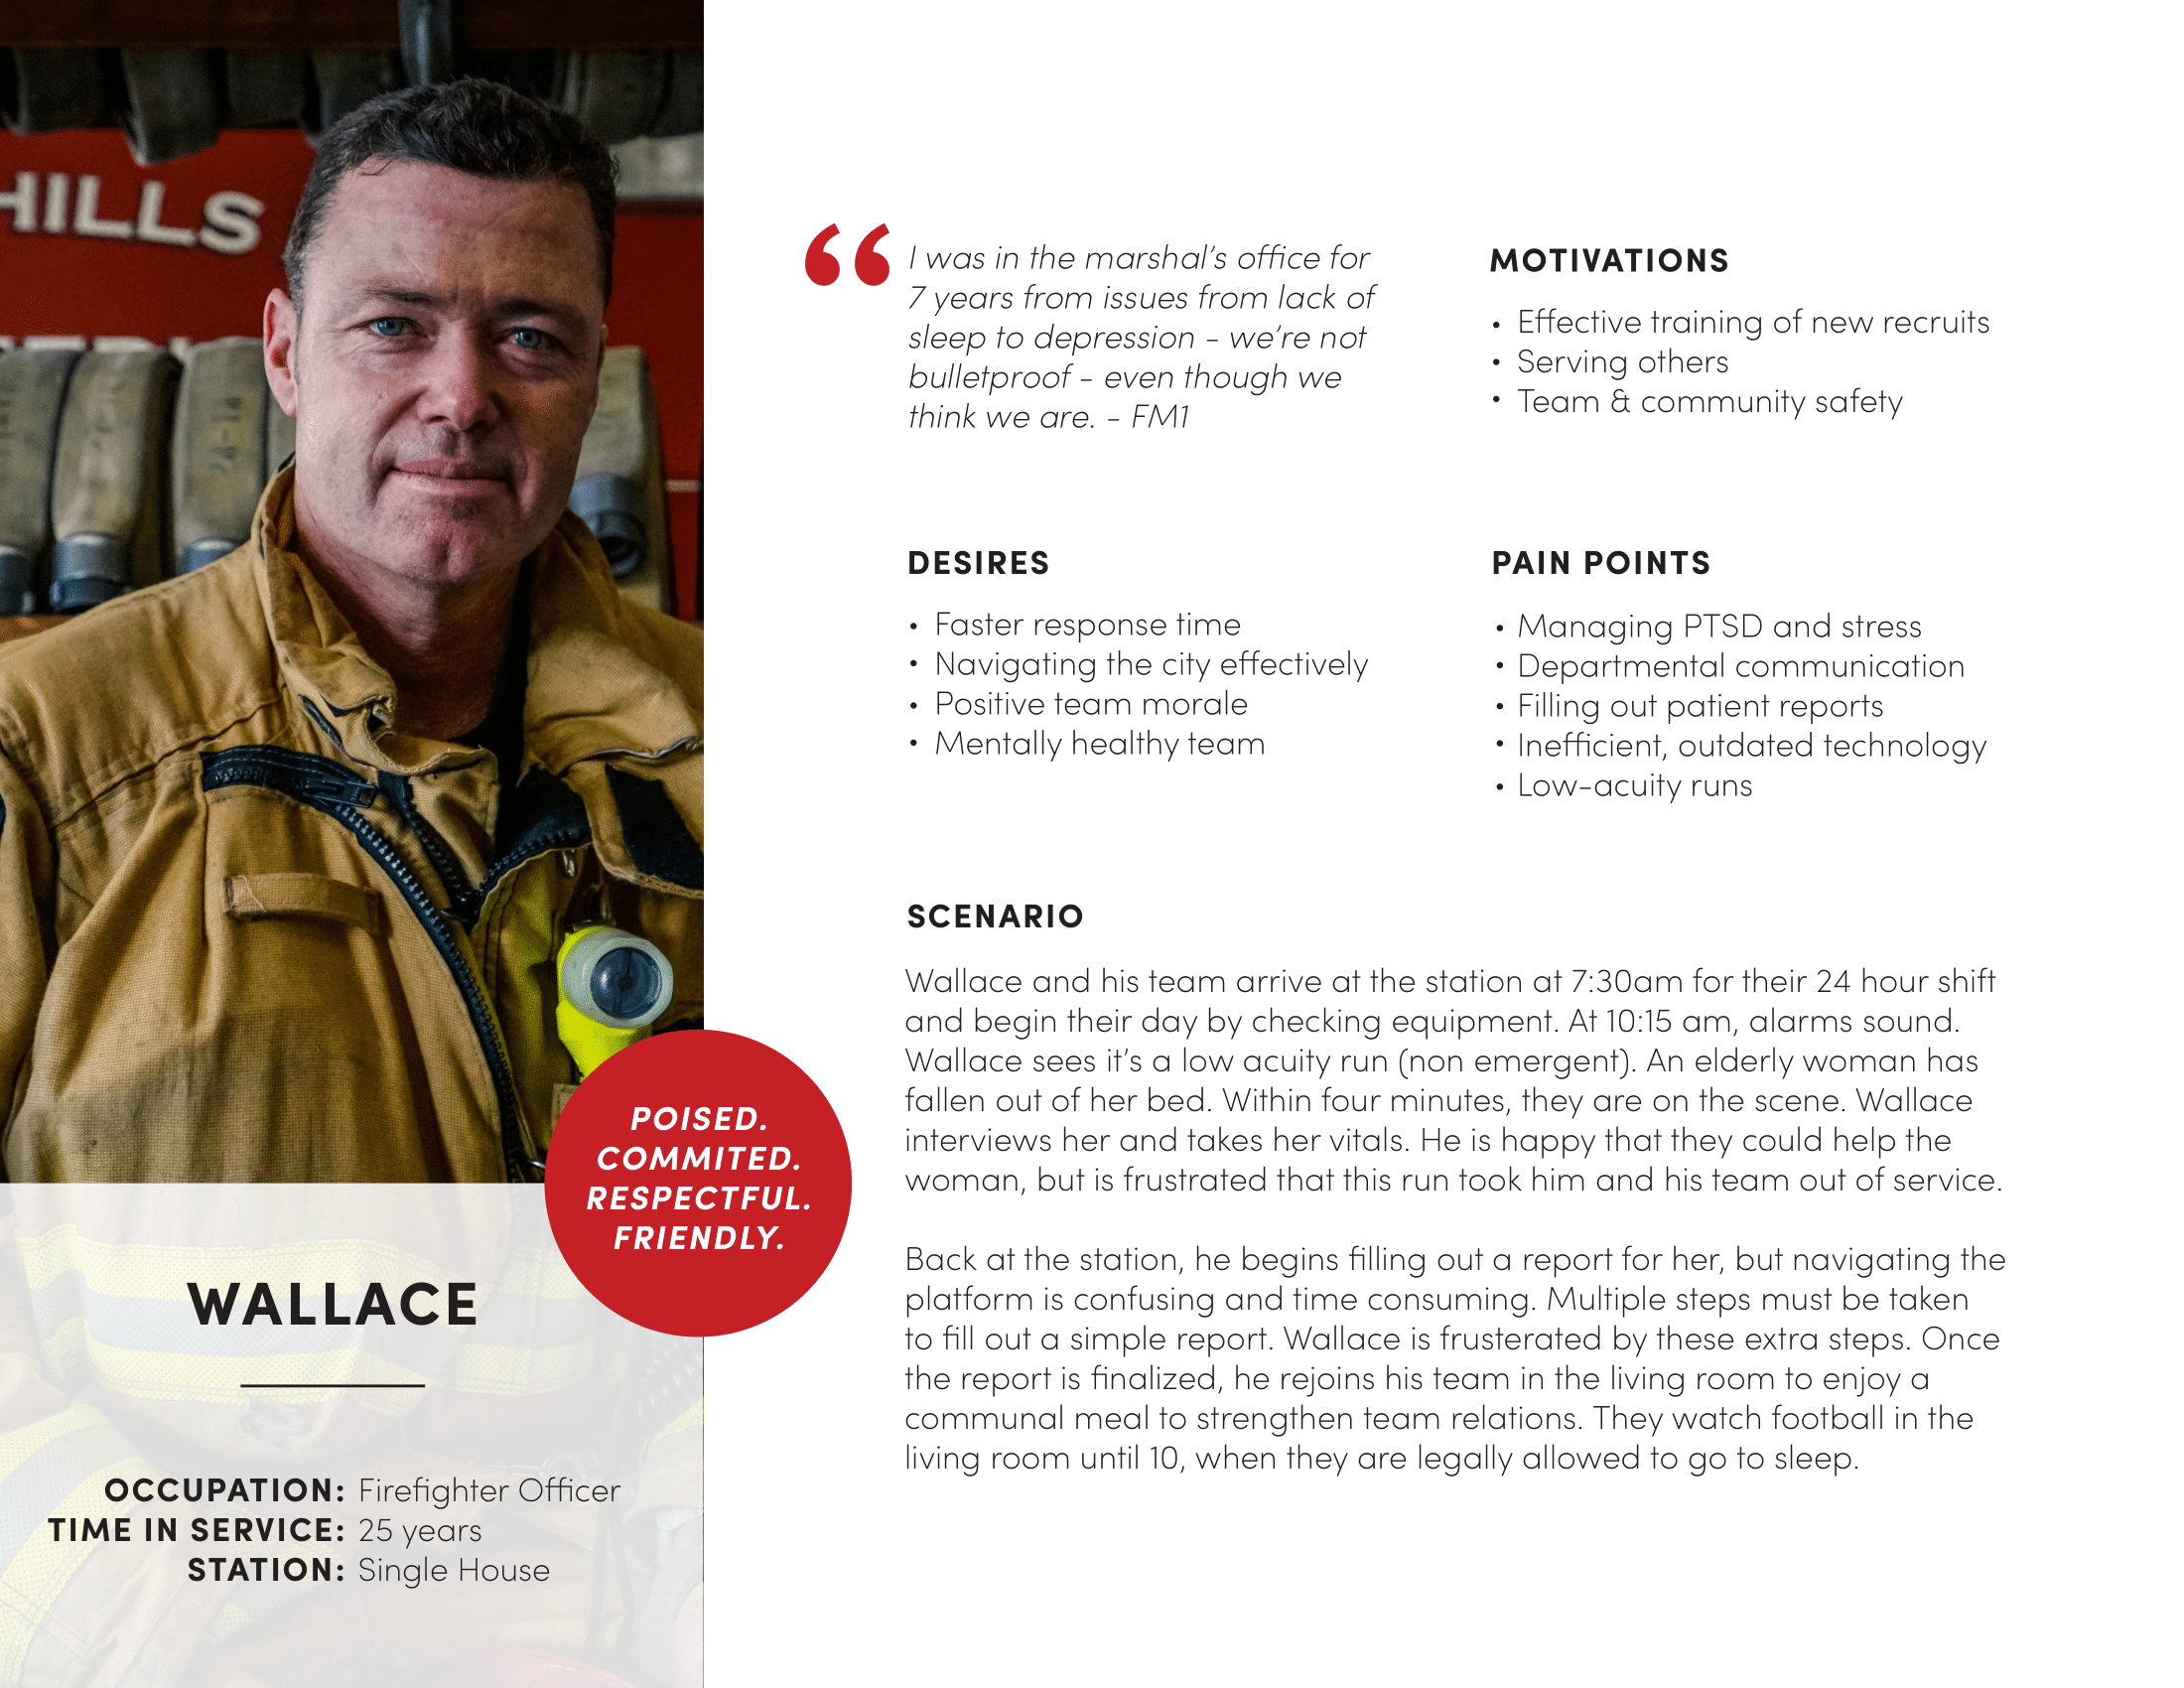 persona for wallace